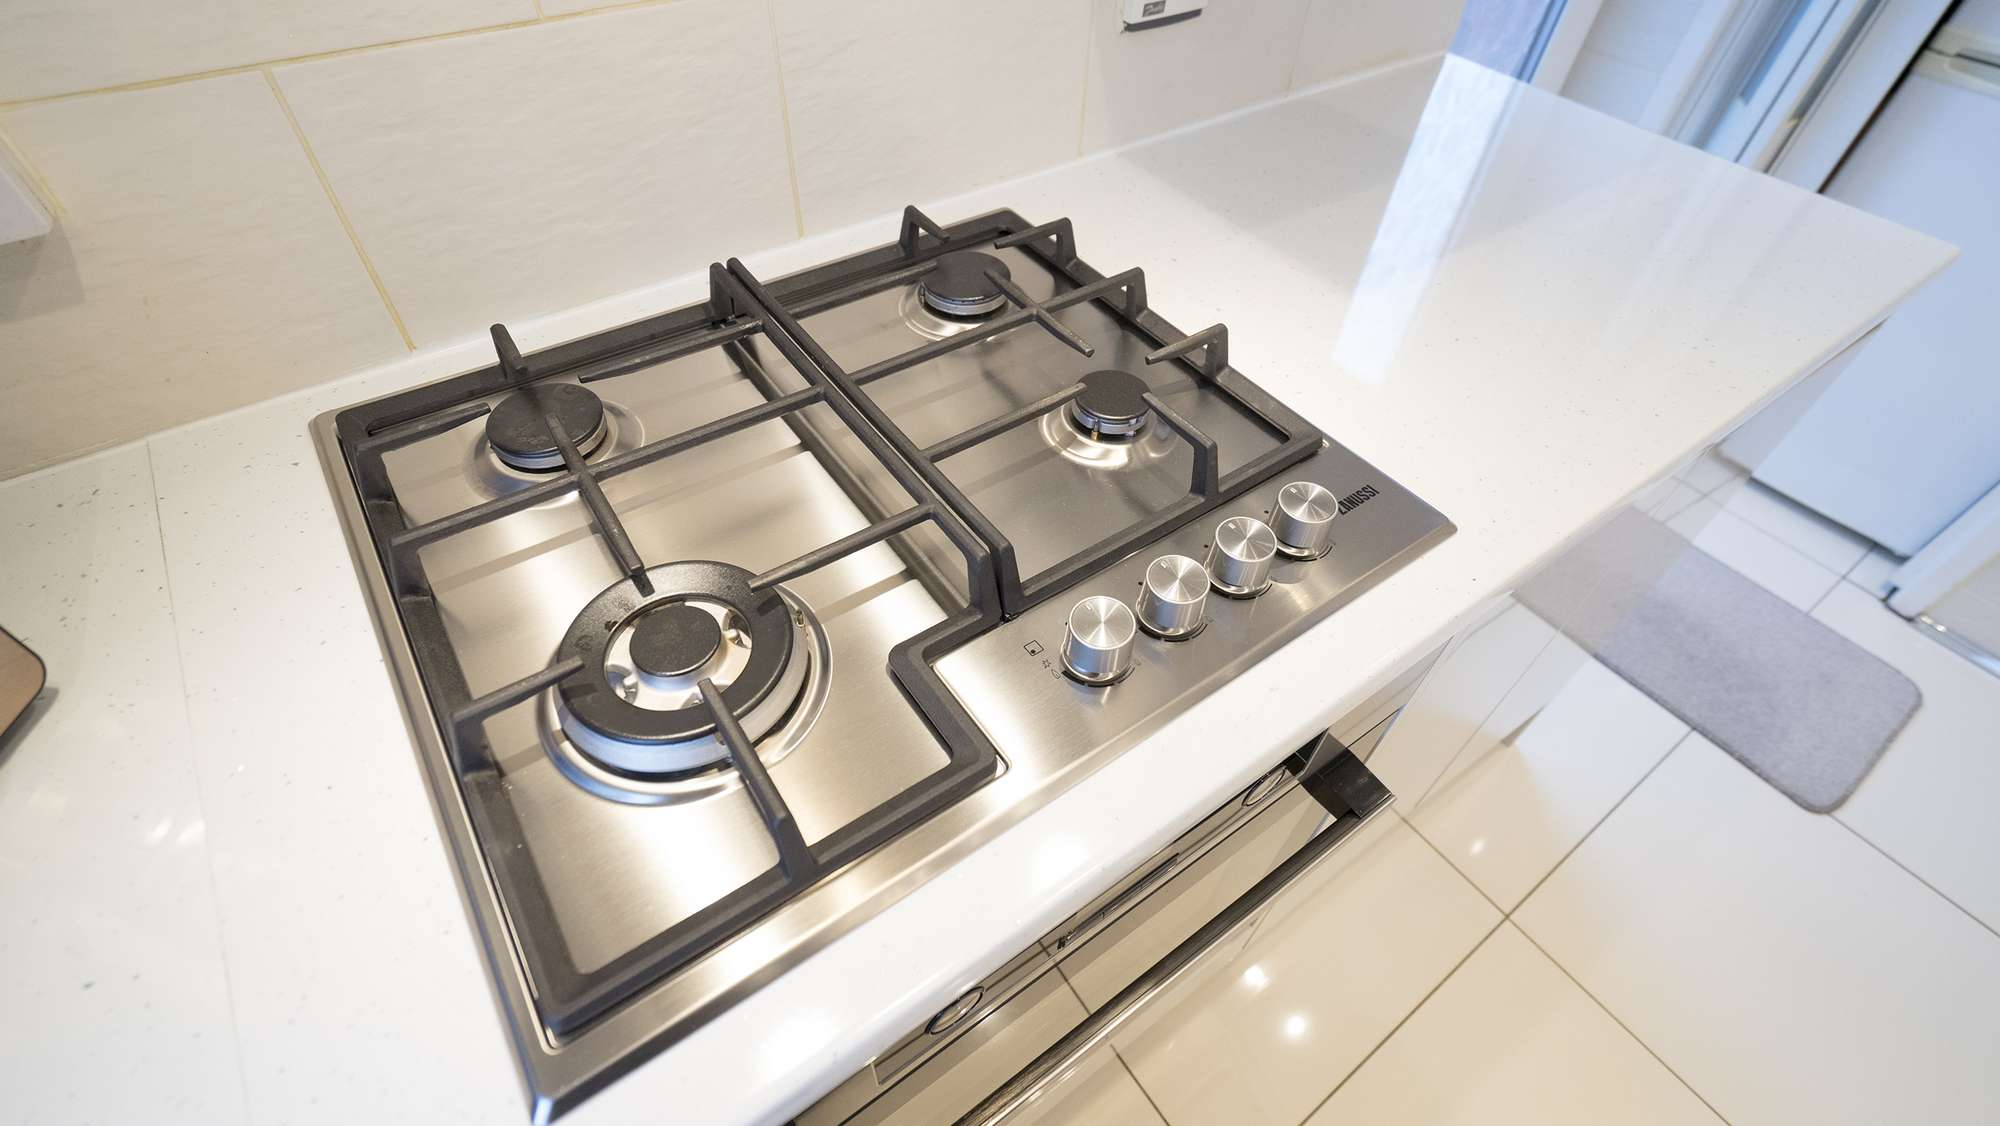 Close up of the 4 burner hob in stainless steel.